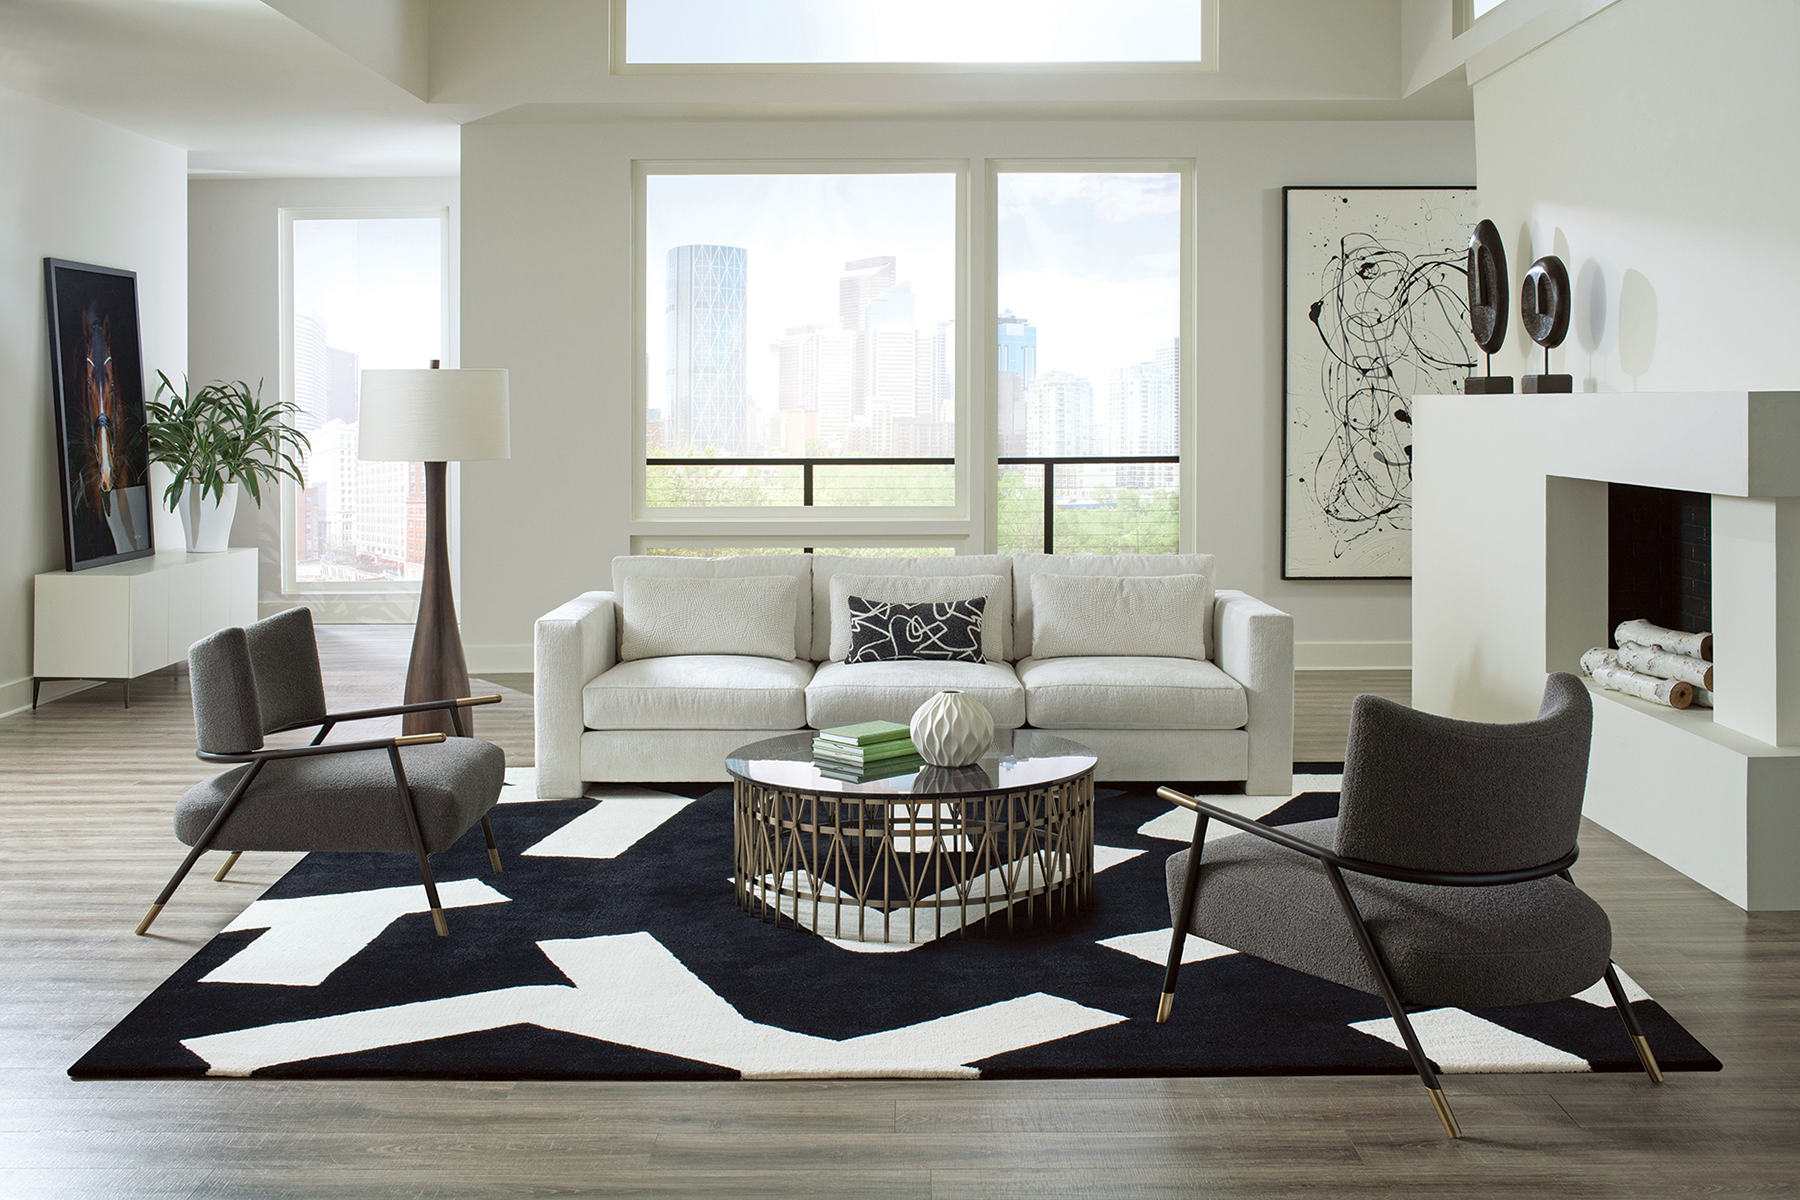 Kai lounge chairs and Straight Up sofa from Thayer Coggin